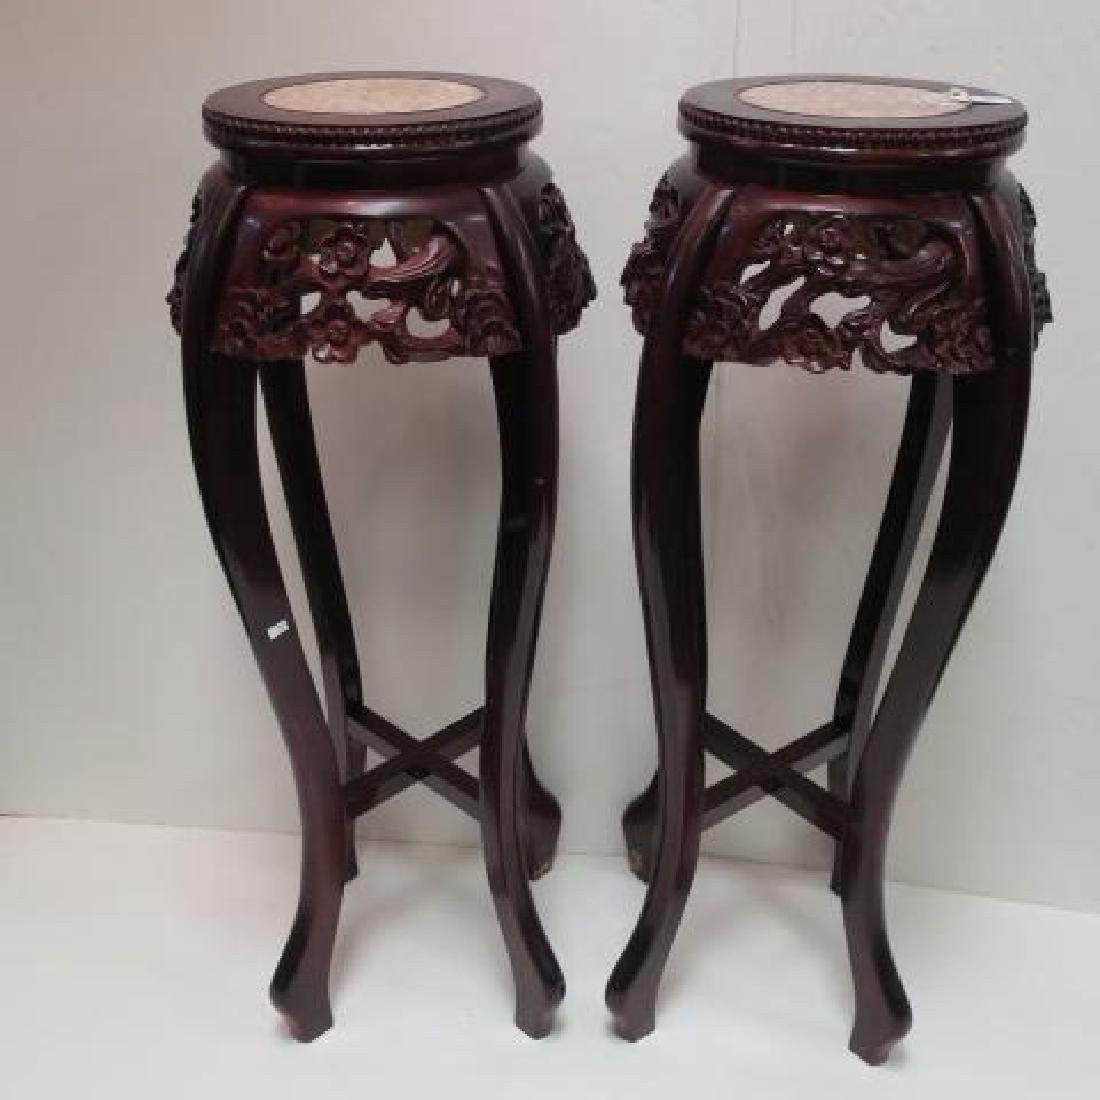 Pair of Carved Mahogany Marble Top Pedestals: